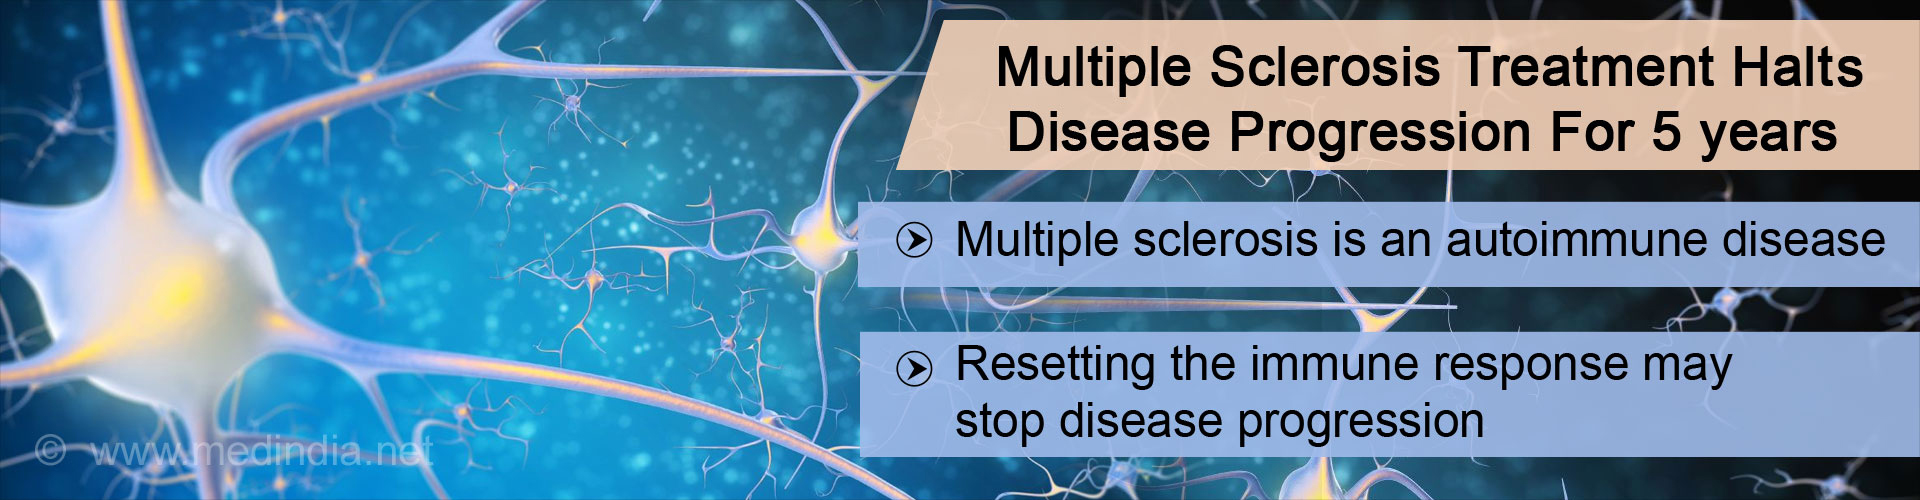 Multiple sclerosis treatment halt disease progression for 5 years - Multiple sclerosis is an autoimmune disease - Resetting the immune response may stop disease progression